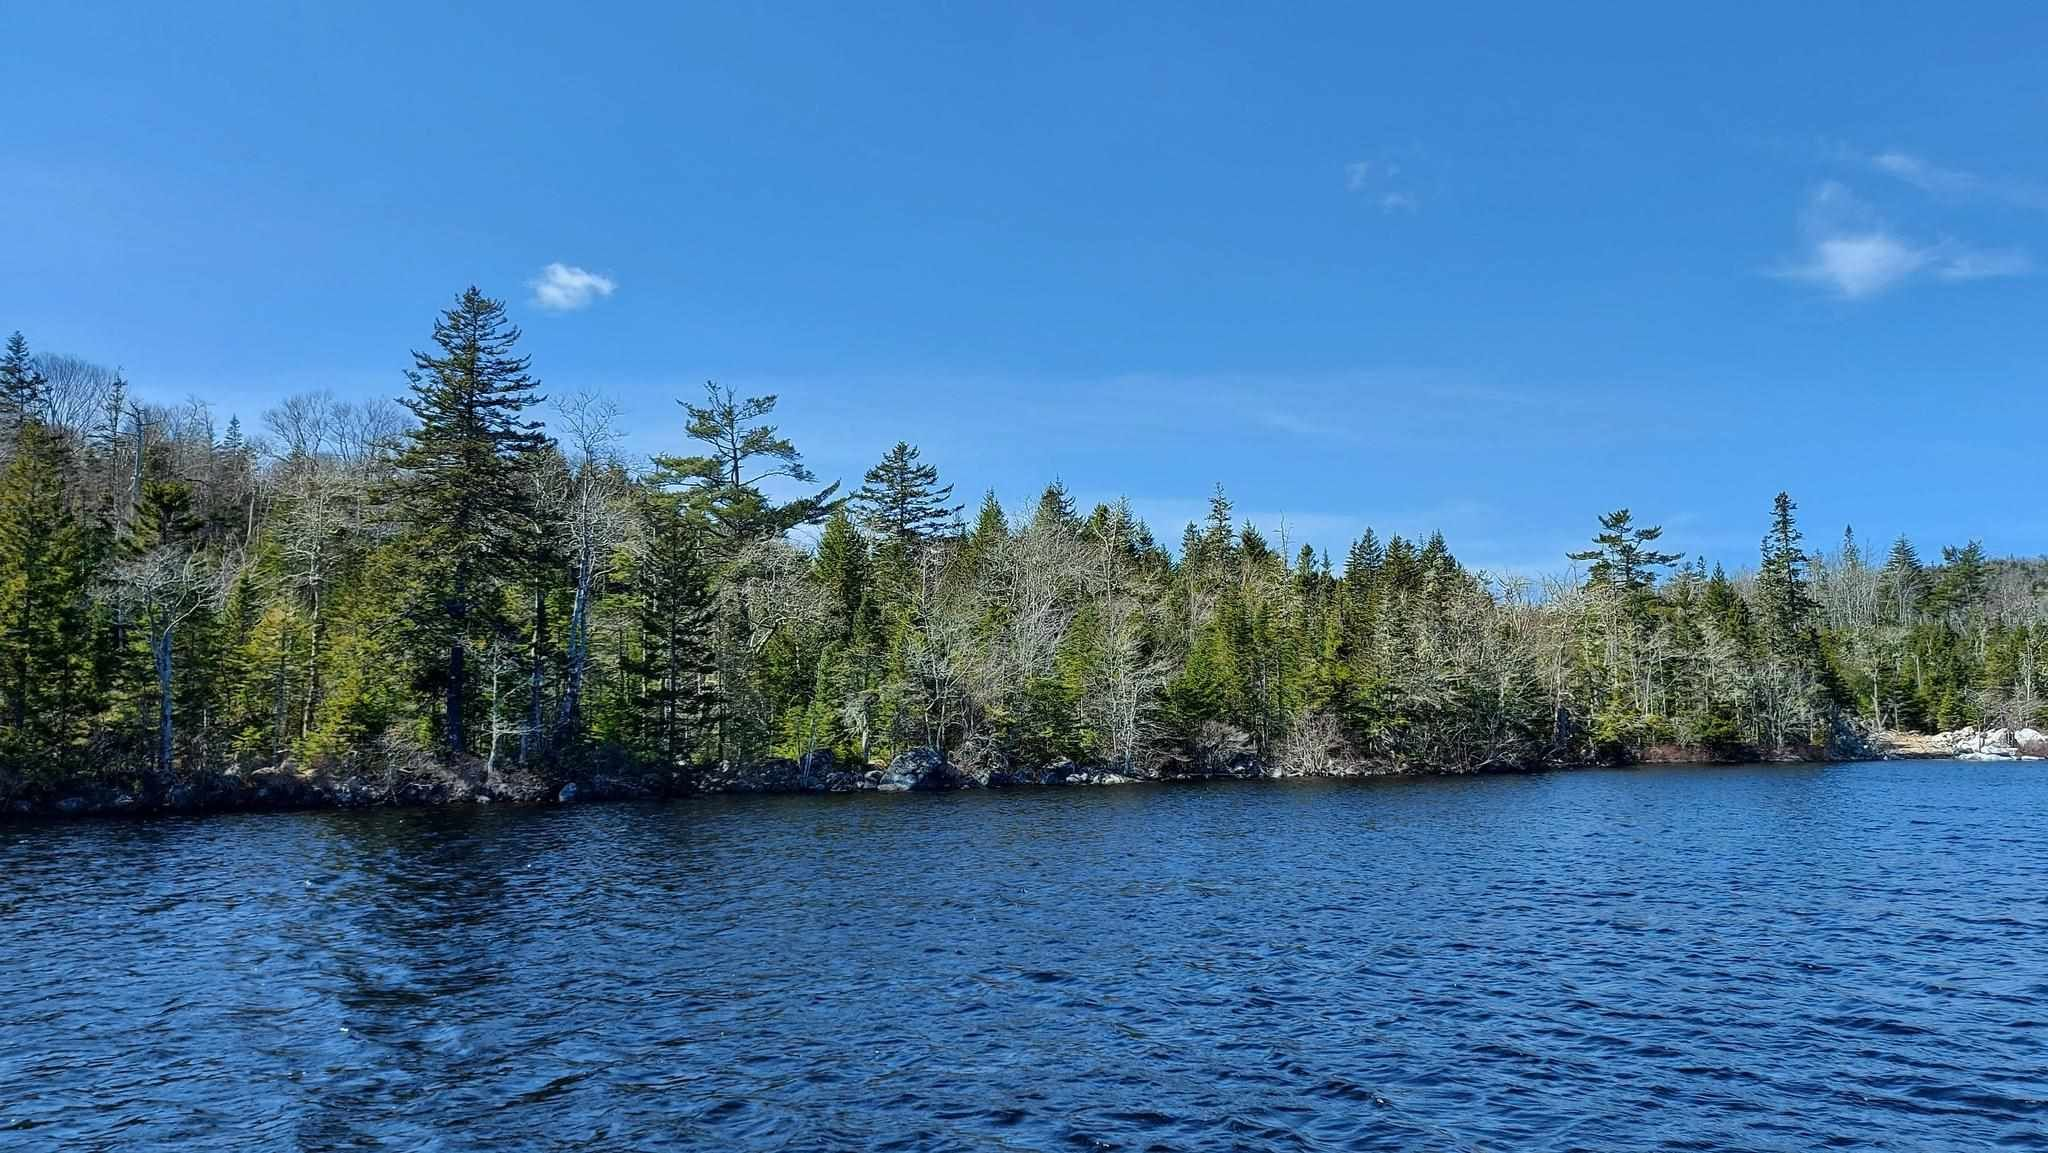 Main Photo: Lot 1 1184 Lake Charlotte Way in Upper Lakeville: 35-Halifax County East Vacant Land for sale (Halifax-Dartmouth)  : MLS®# 202113706